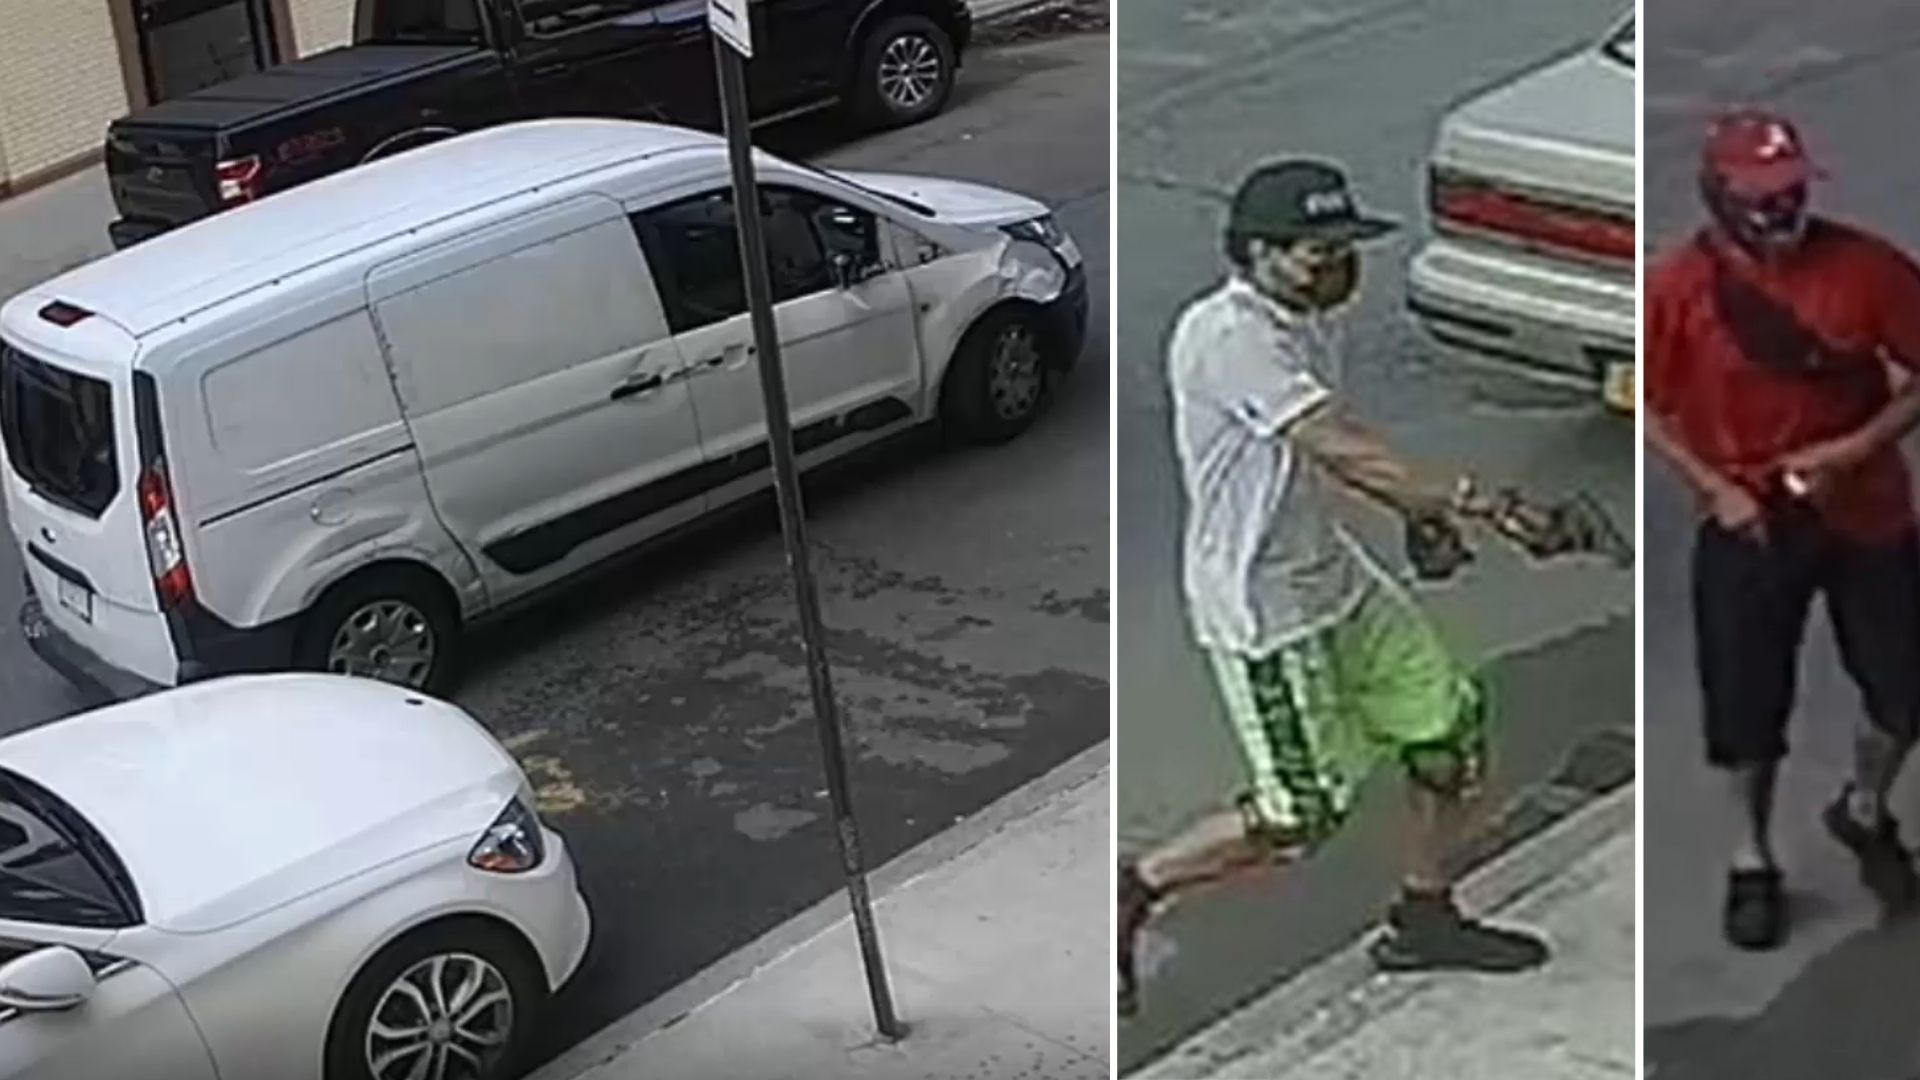 Van and suspects wanted in Bronx robbery